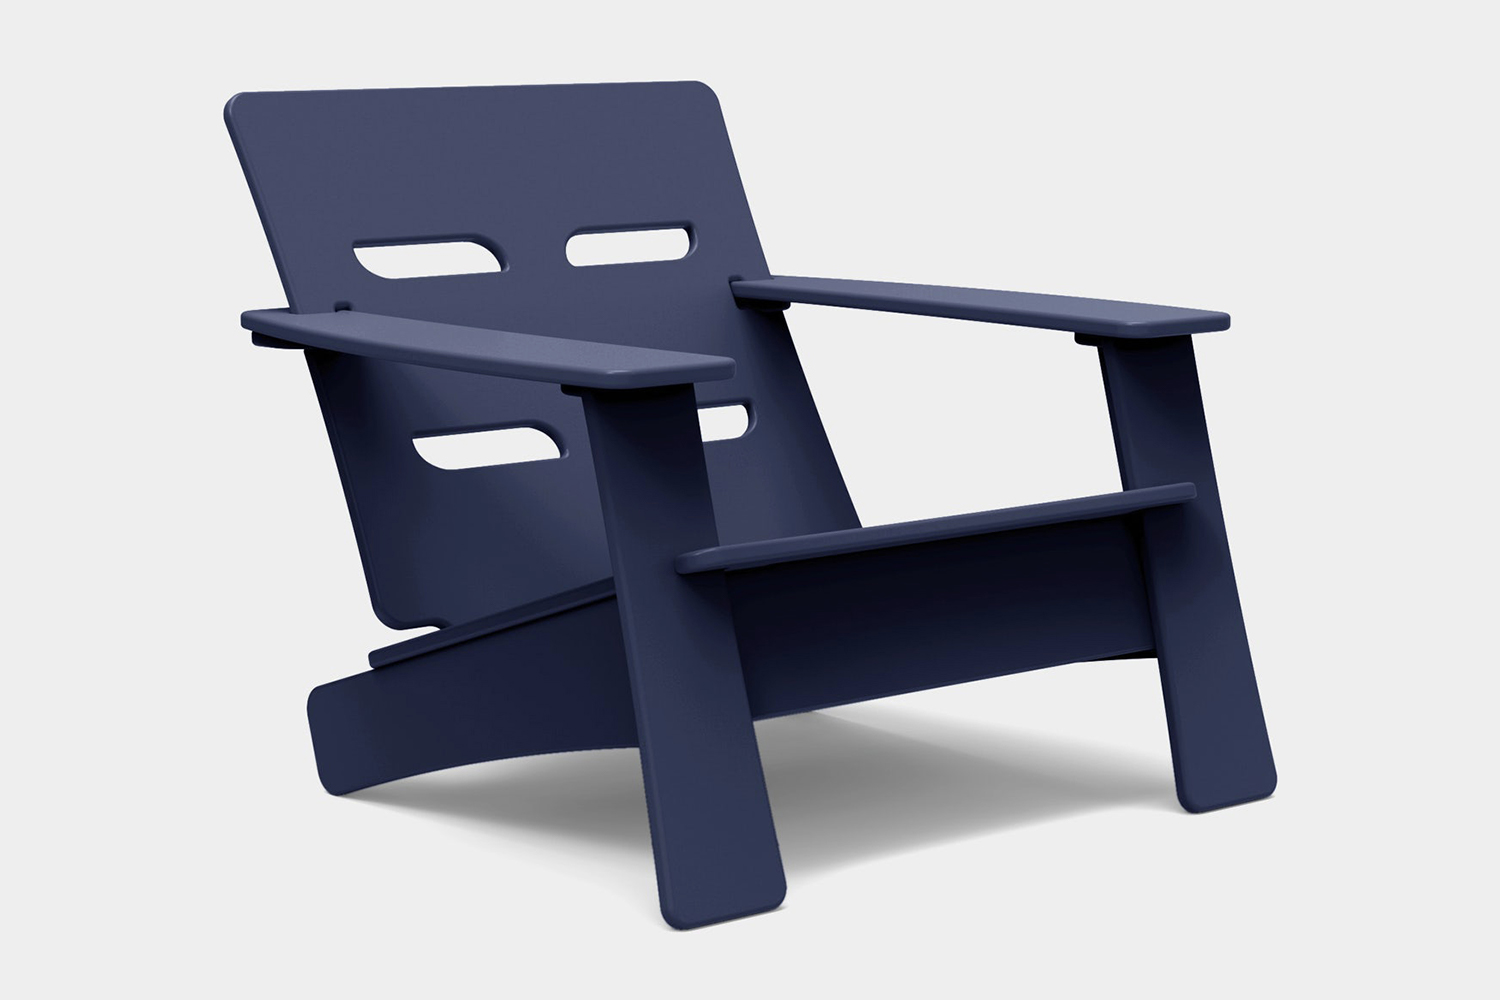 Cabrio Lounge Chair from Design Within Reach